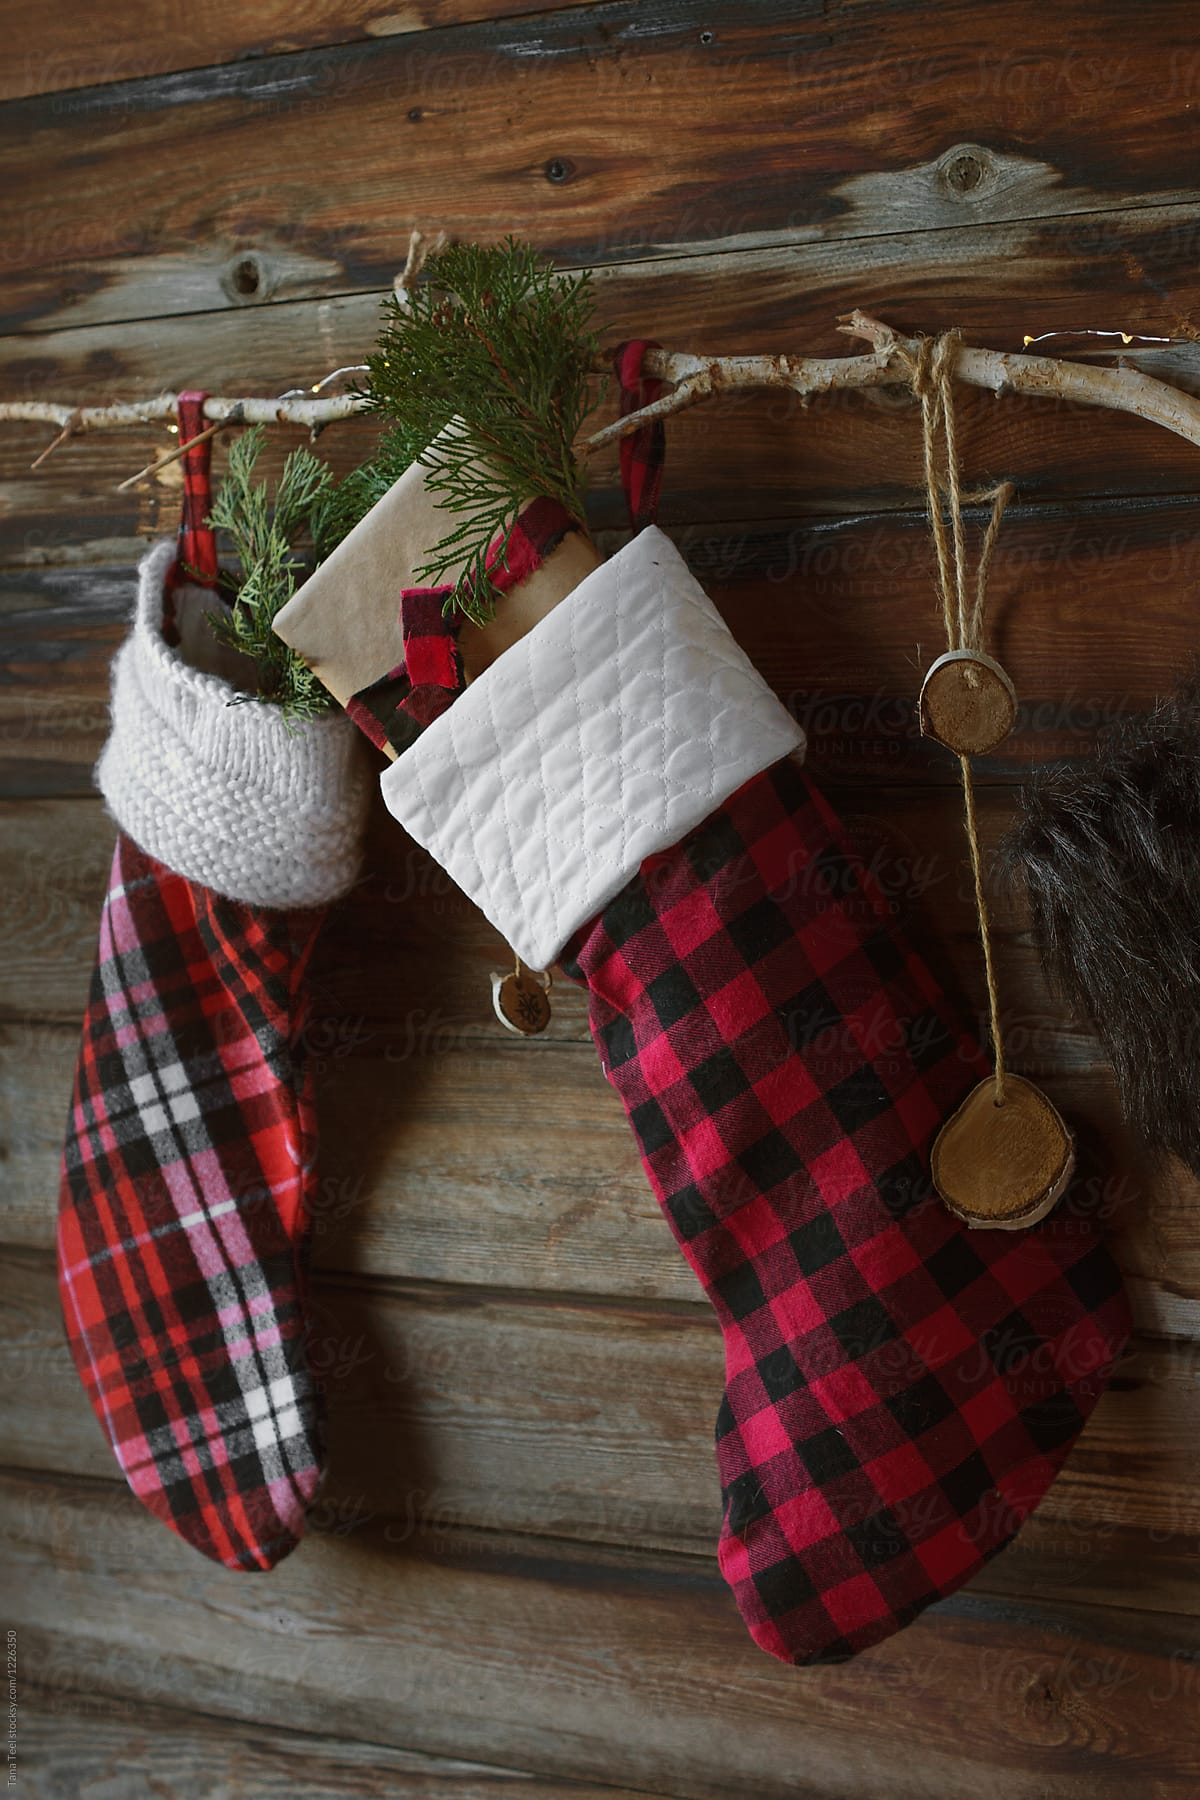 Christmas stockings hung on rustic wall by tana teel for stocksy united